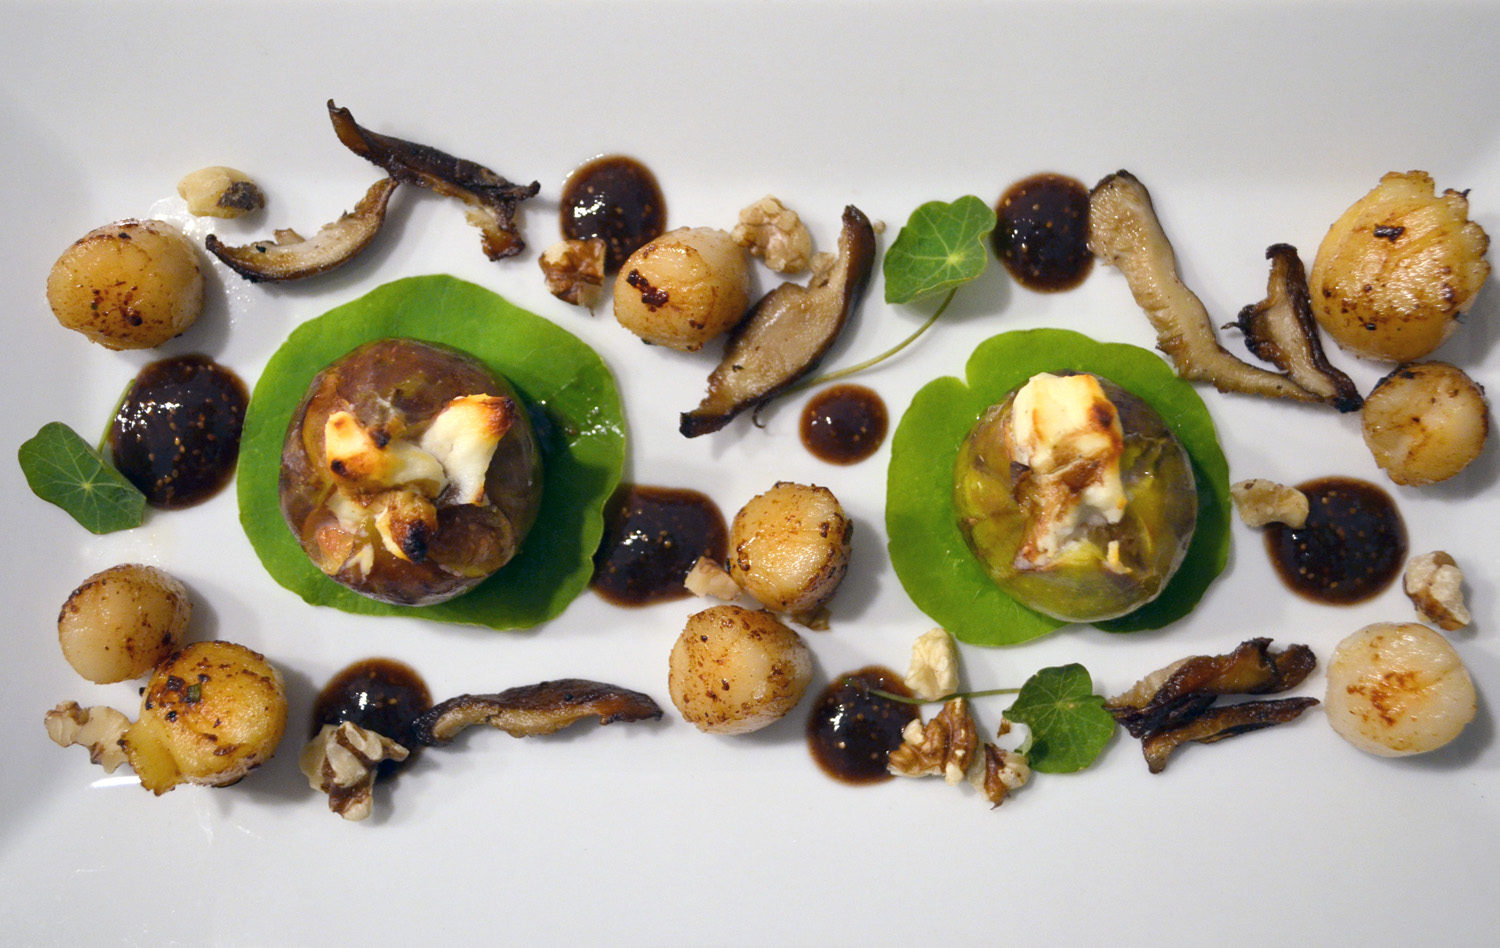 Peconic Bay Scallops and Figs